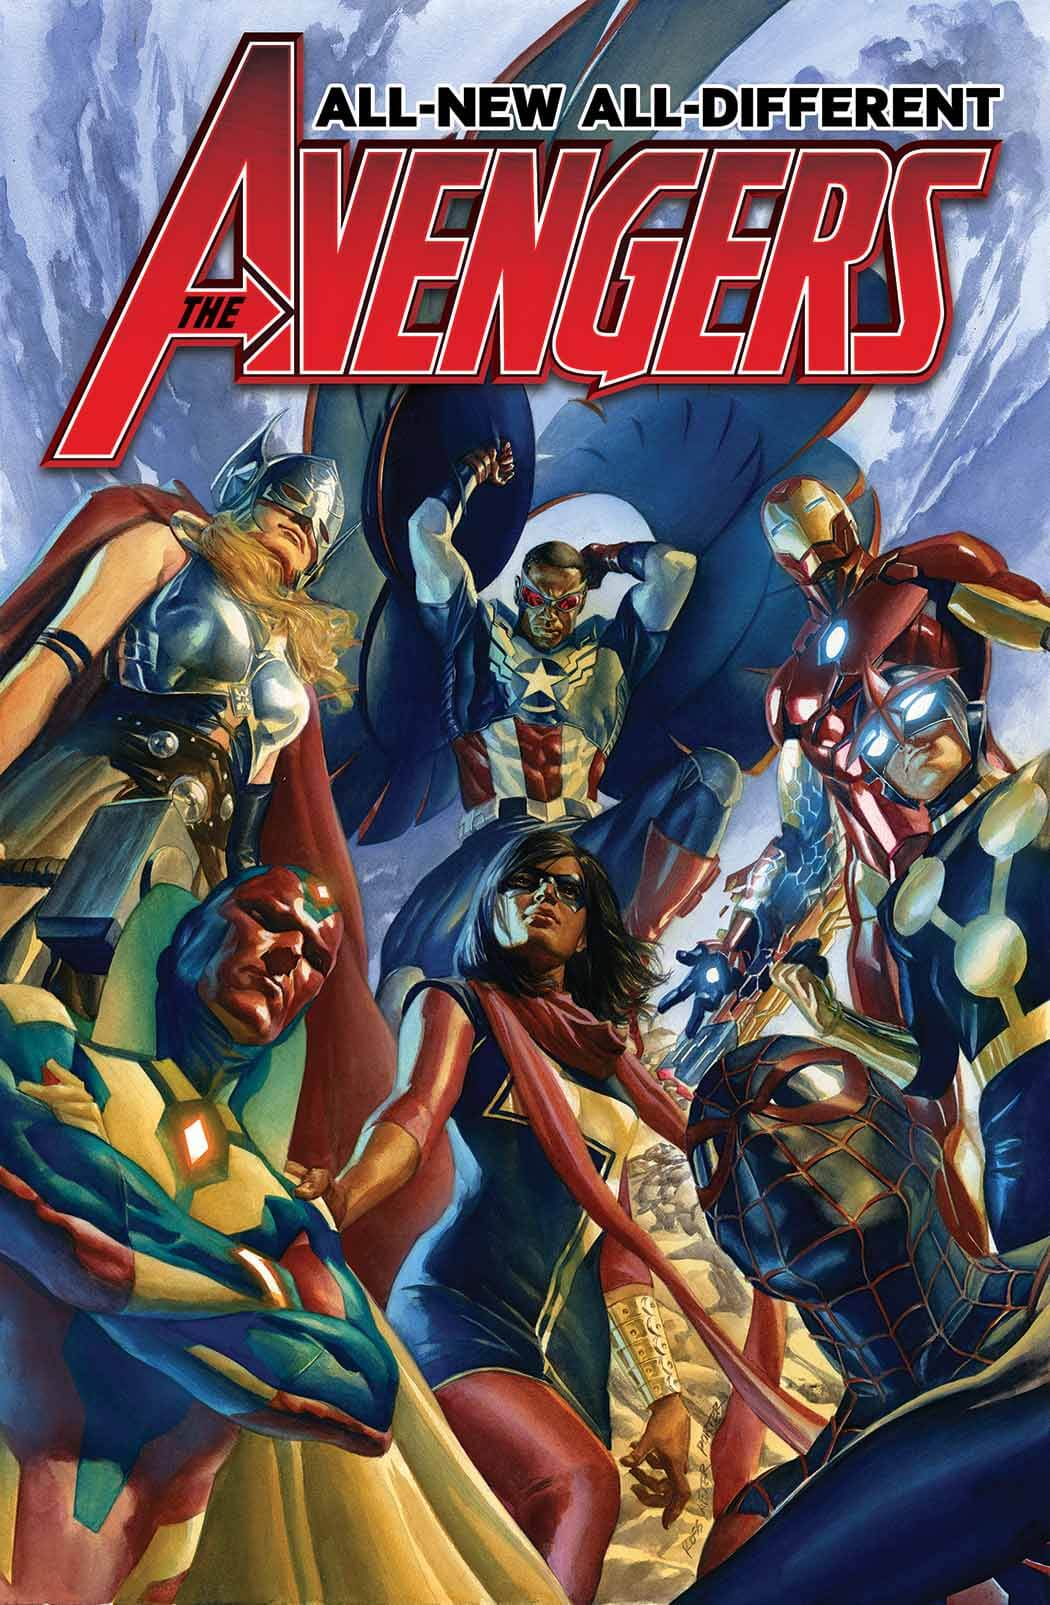 All-New All-Different Avengers